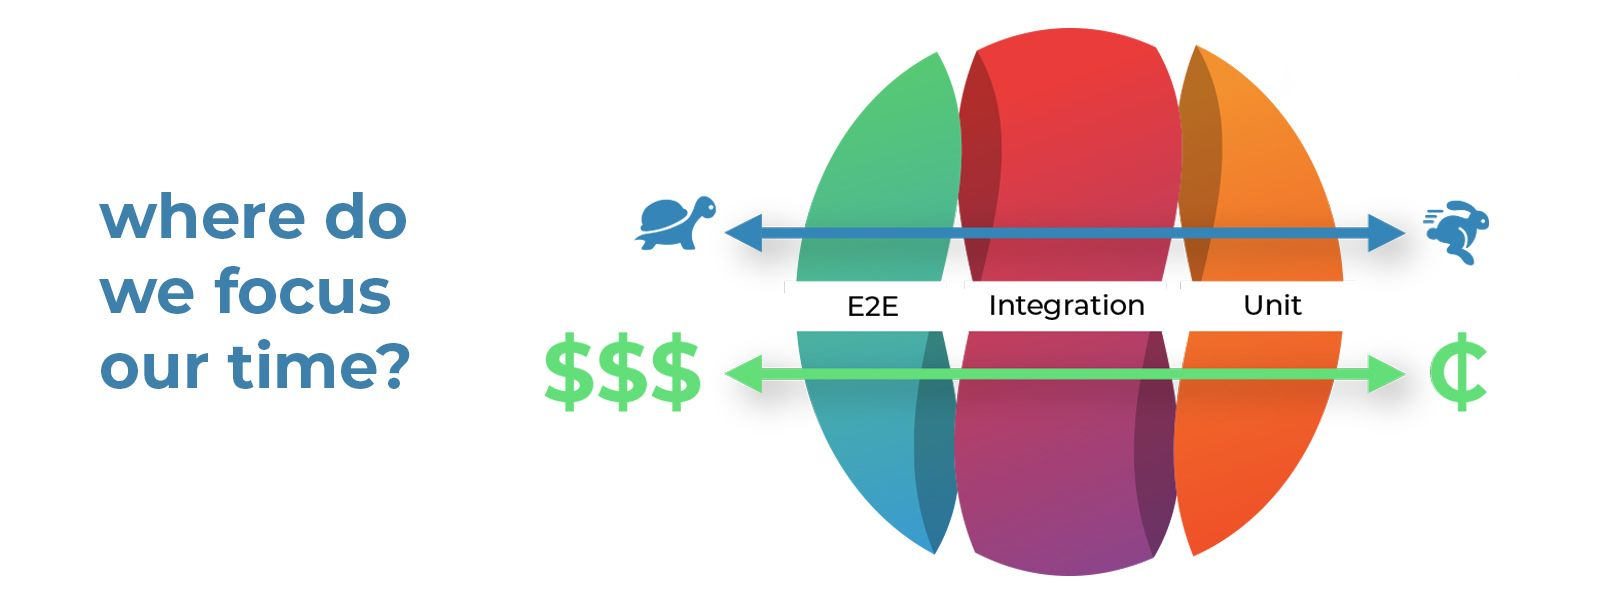 where do we focus our time, from E2E, integration, and unit